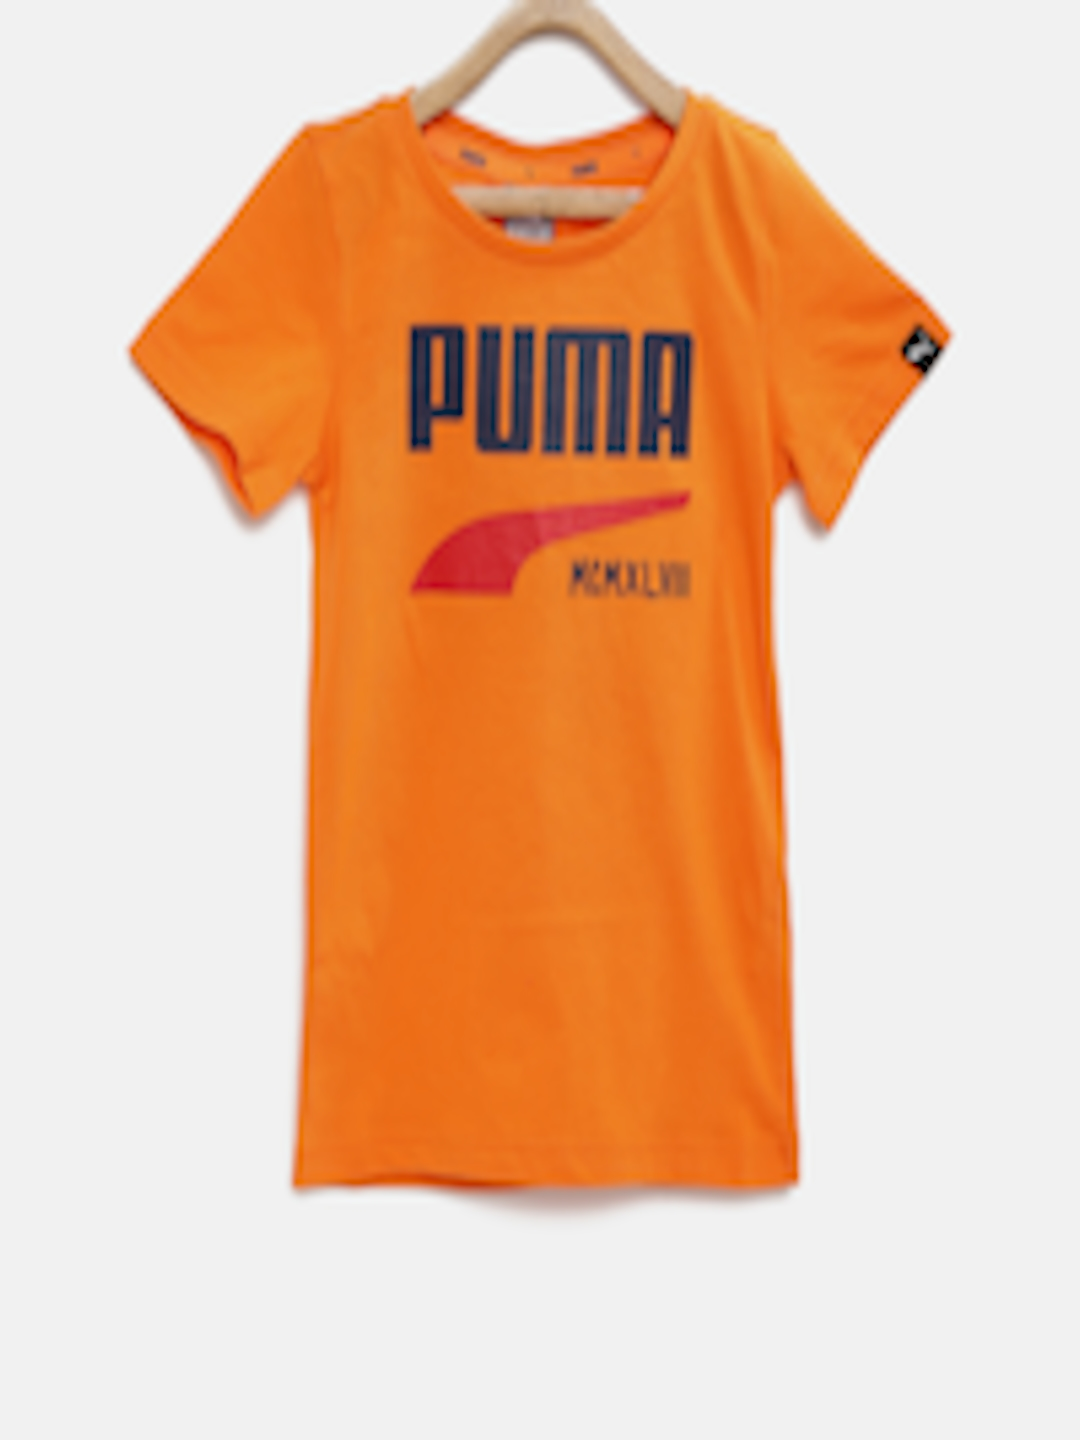 Buy Puma Boys Orange Style Graphic Print T Shirt Tshirts